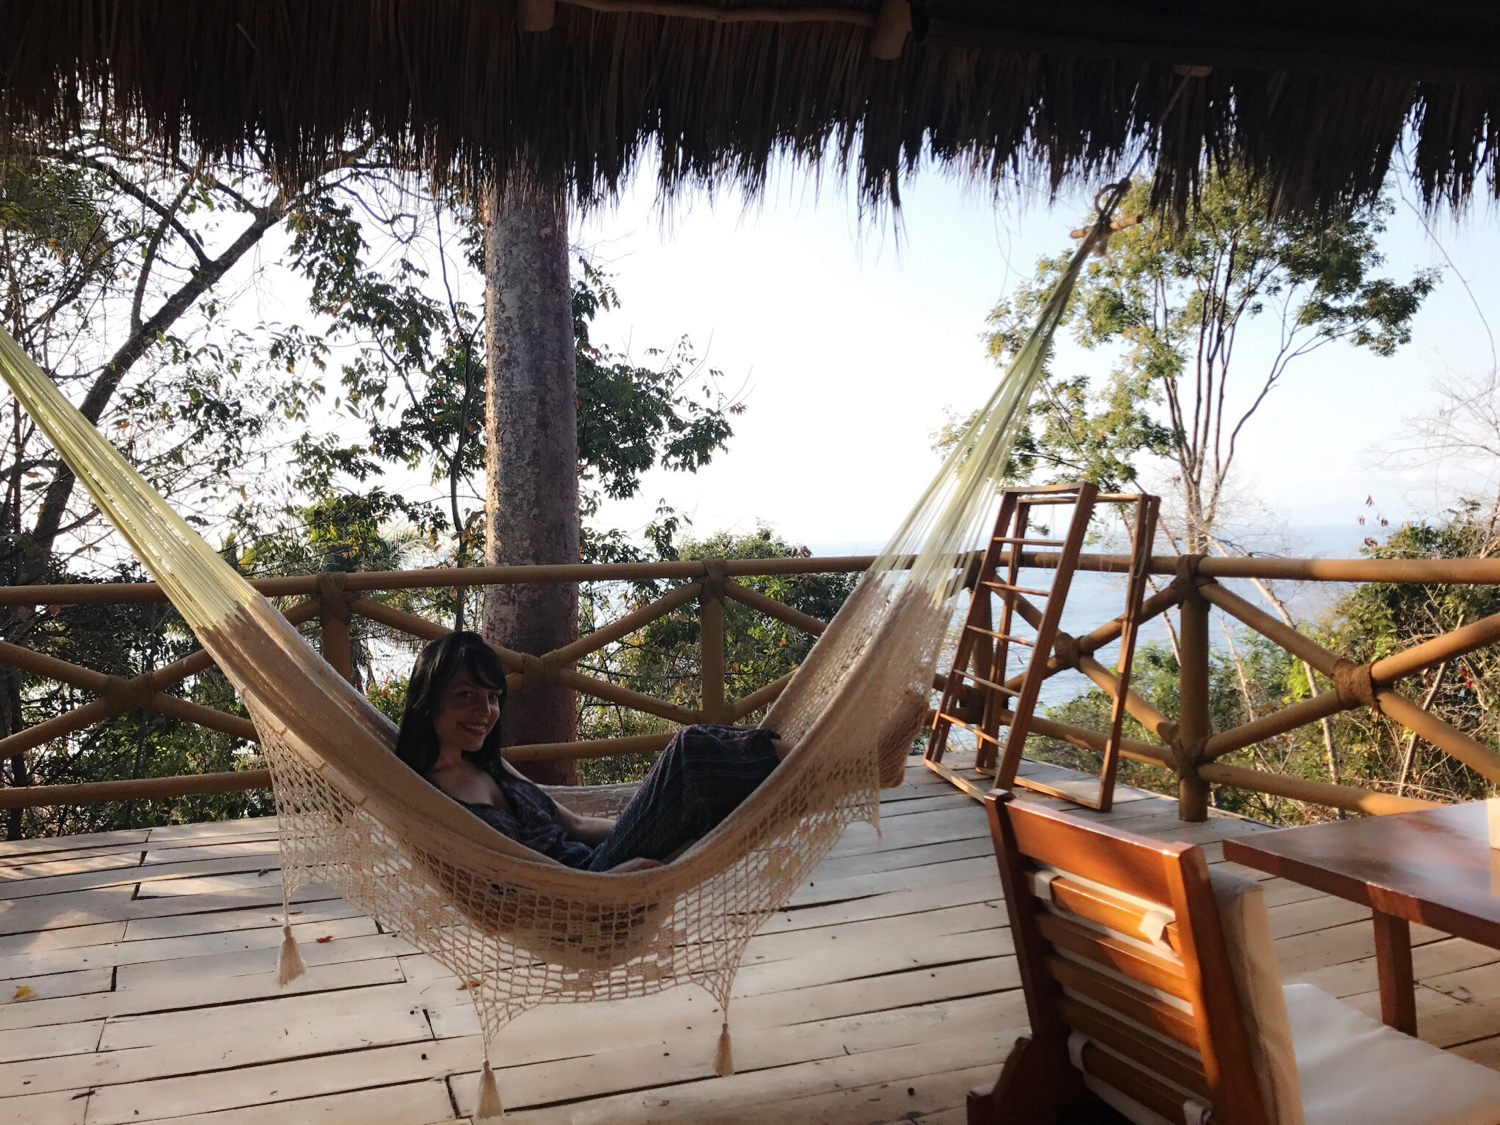 Colleen lounging on the hammock in our Small Palapa's terrace.